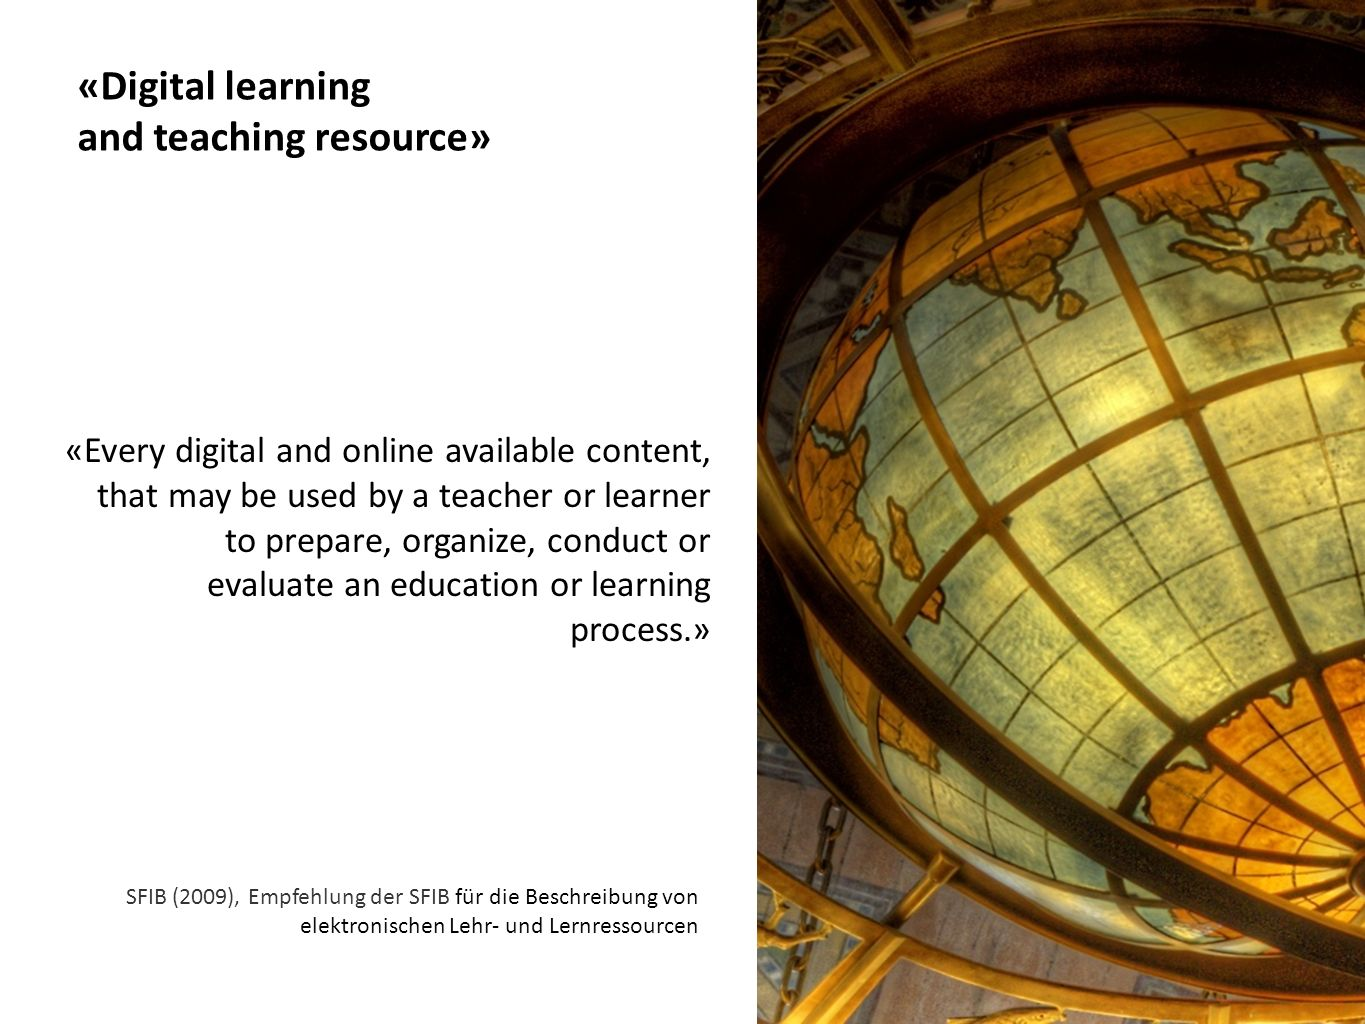 SFIB (2009), Empfehlung der SFIB für die Beschreibung von elektronischen Lehr- und Lernressourcen «Digital learning and teaching resource» «Every digital and online available content, that may be used by a teacher or learner to prepare, organize, conduct or evaluate an education or learning process.»